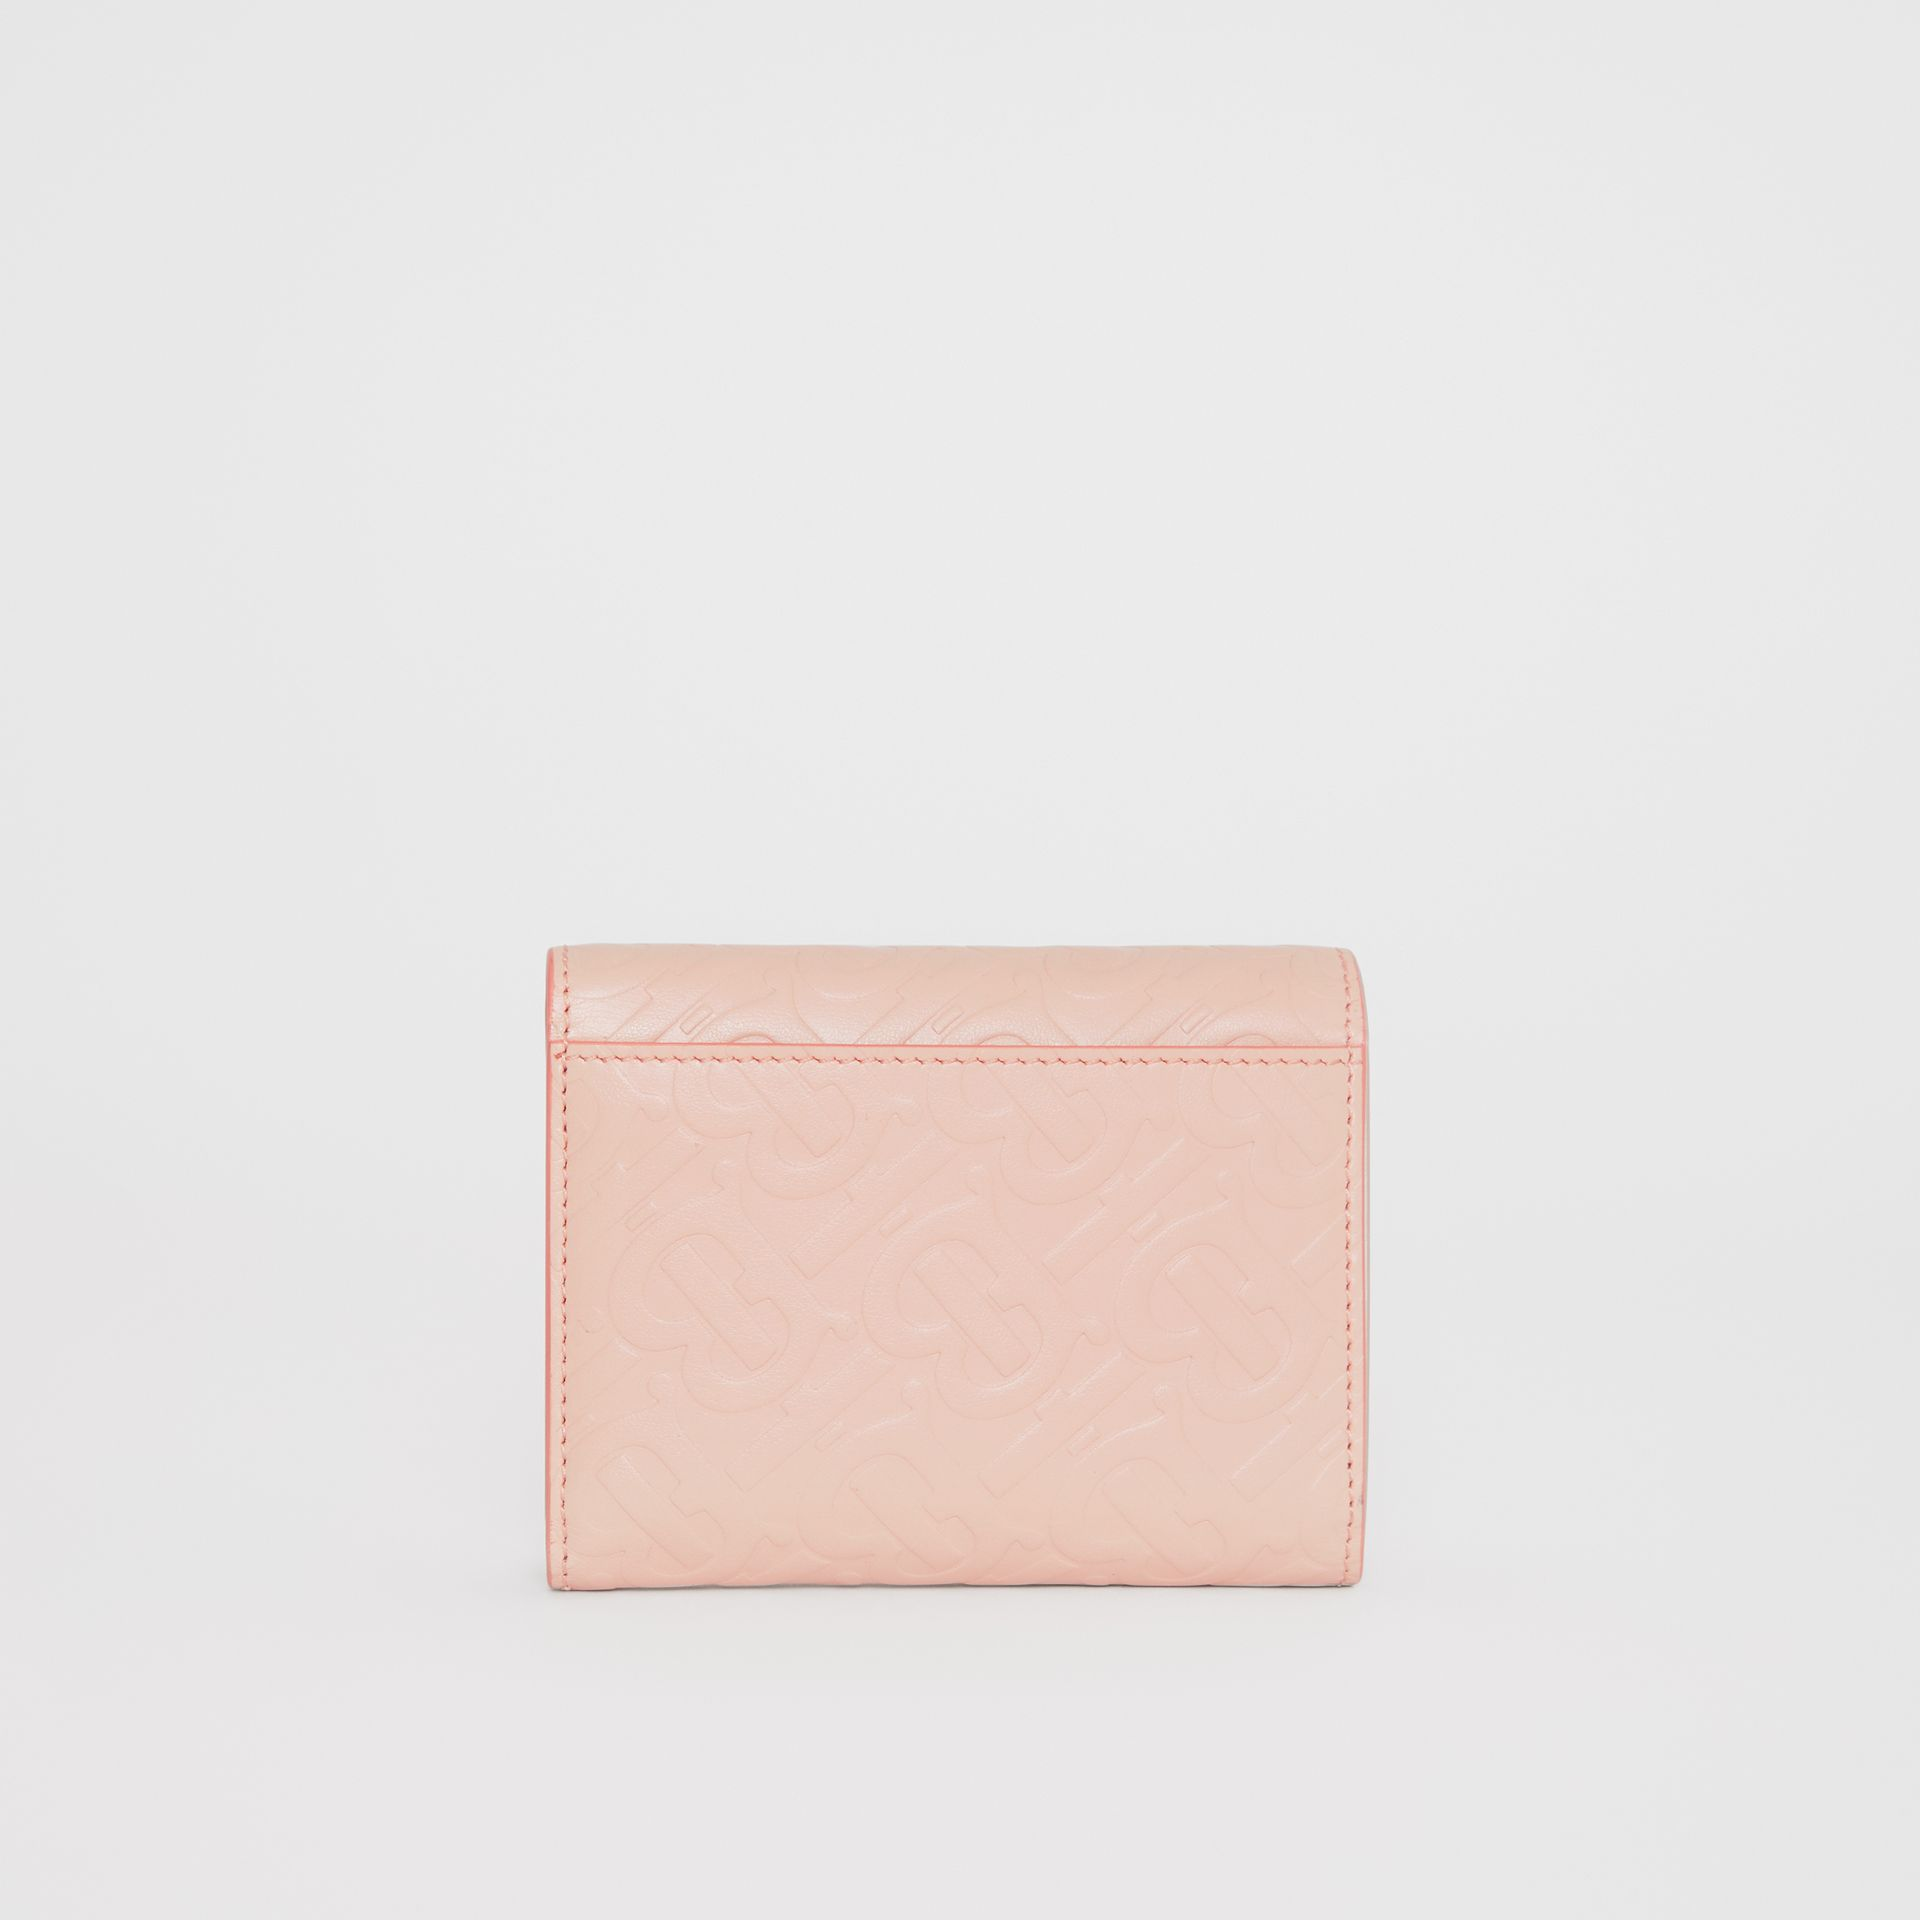 Small Monogram Leather Folding Wallet in Rose Beige | Burberry United Kingdom - gallery image 4